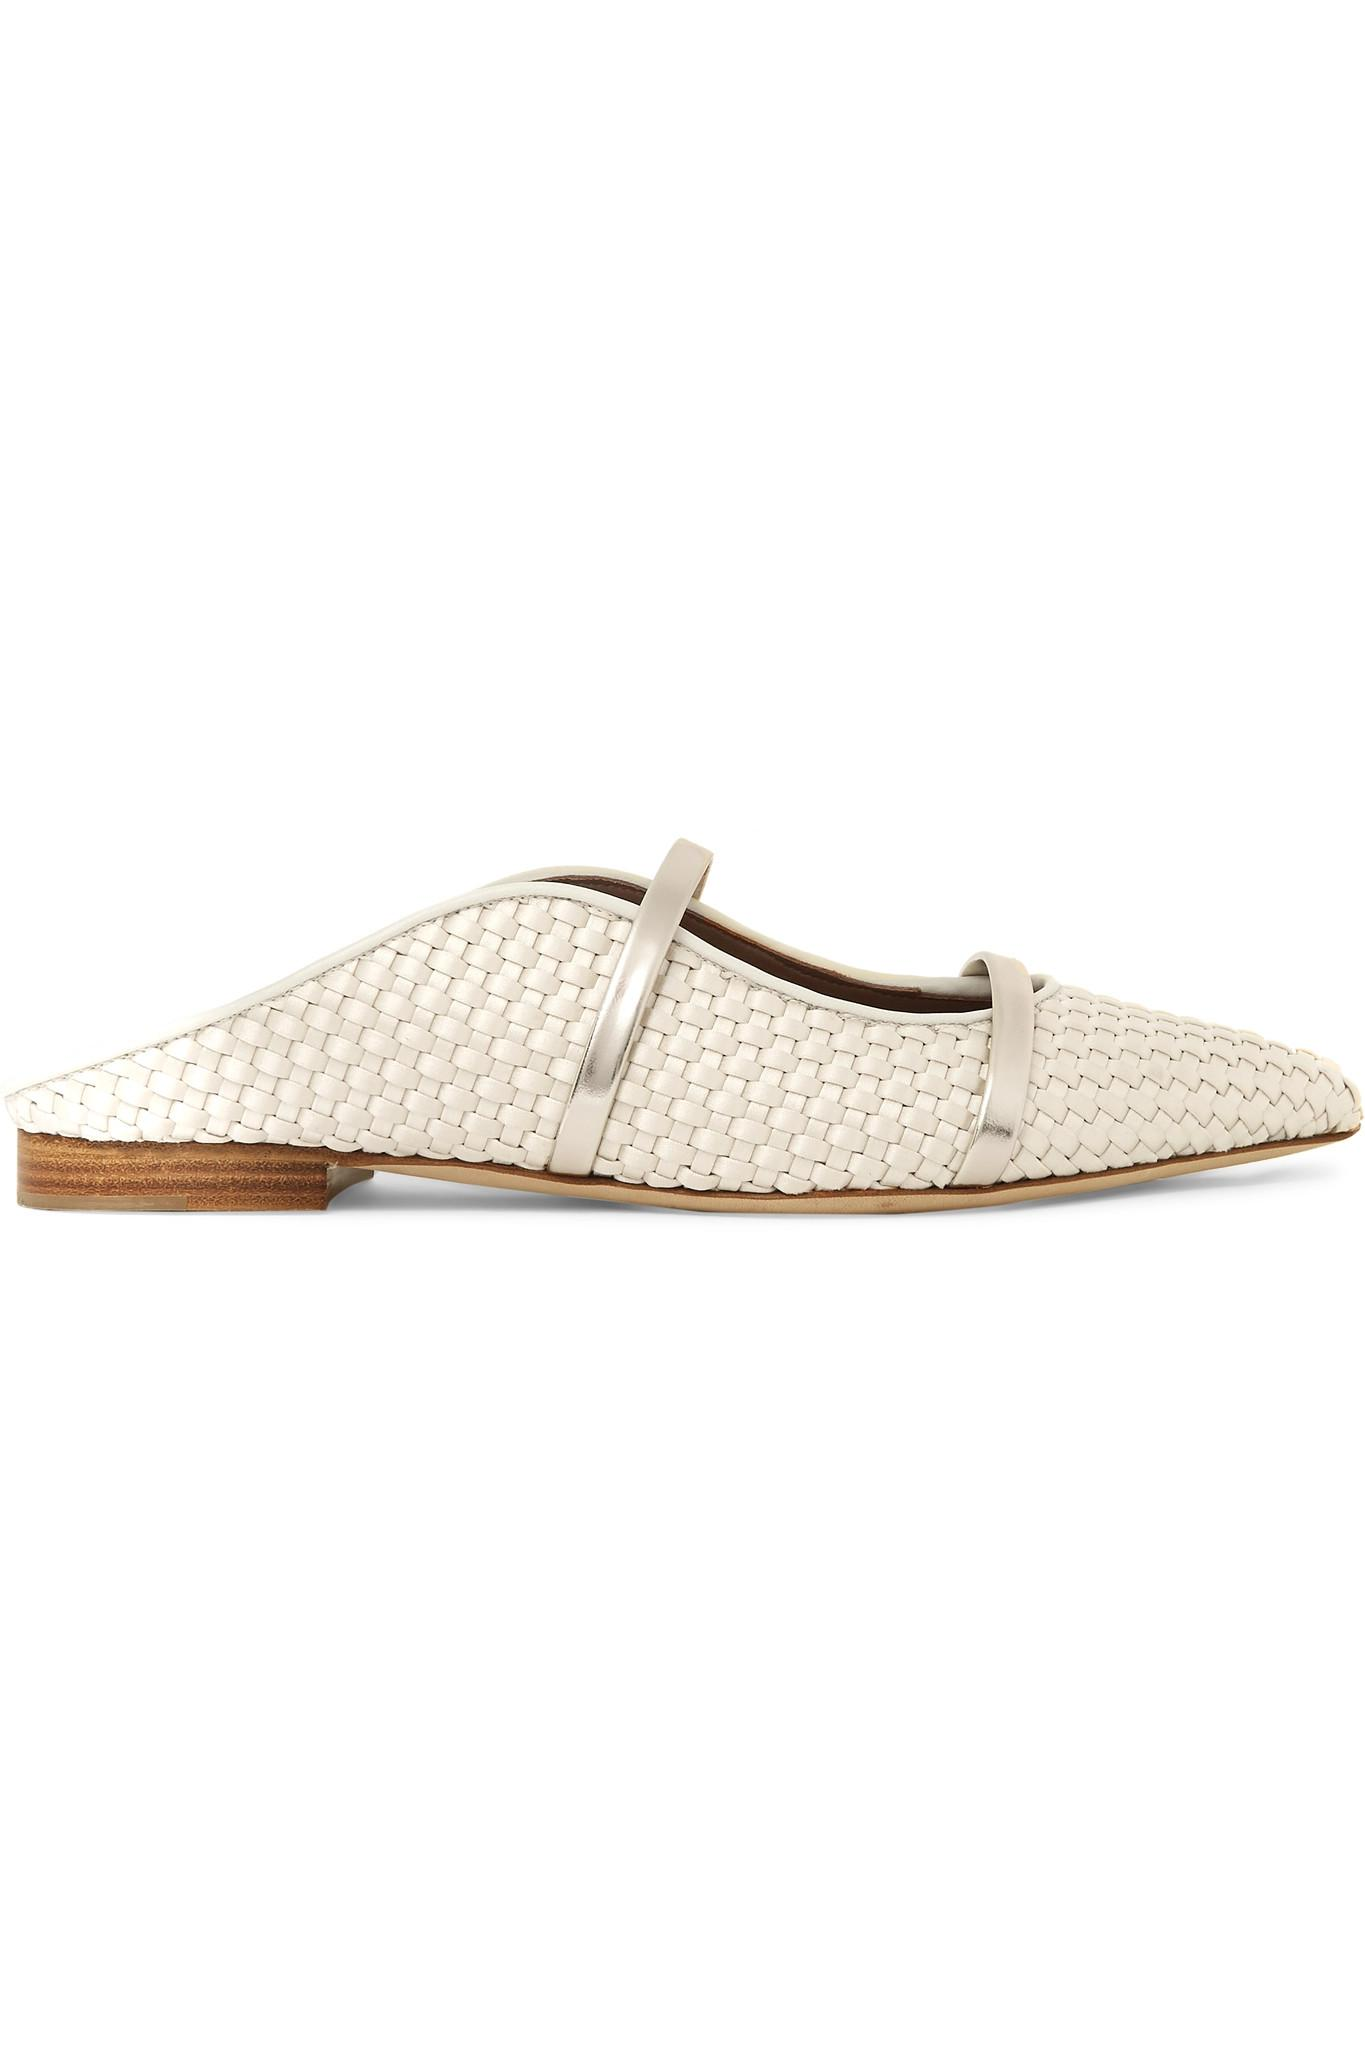 60b2650612f Malone Souliers. Women s Natural Maureen Metallic Leather-trimmed Woven  Satin Point-toe Flats